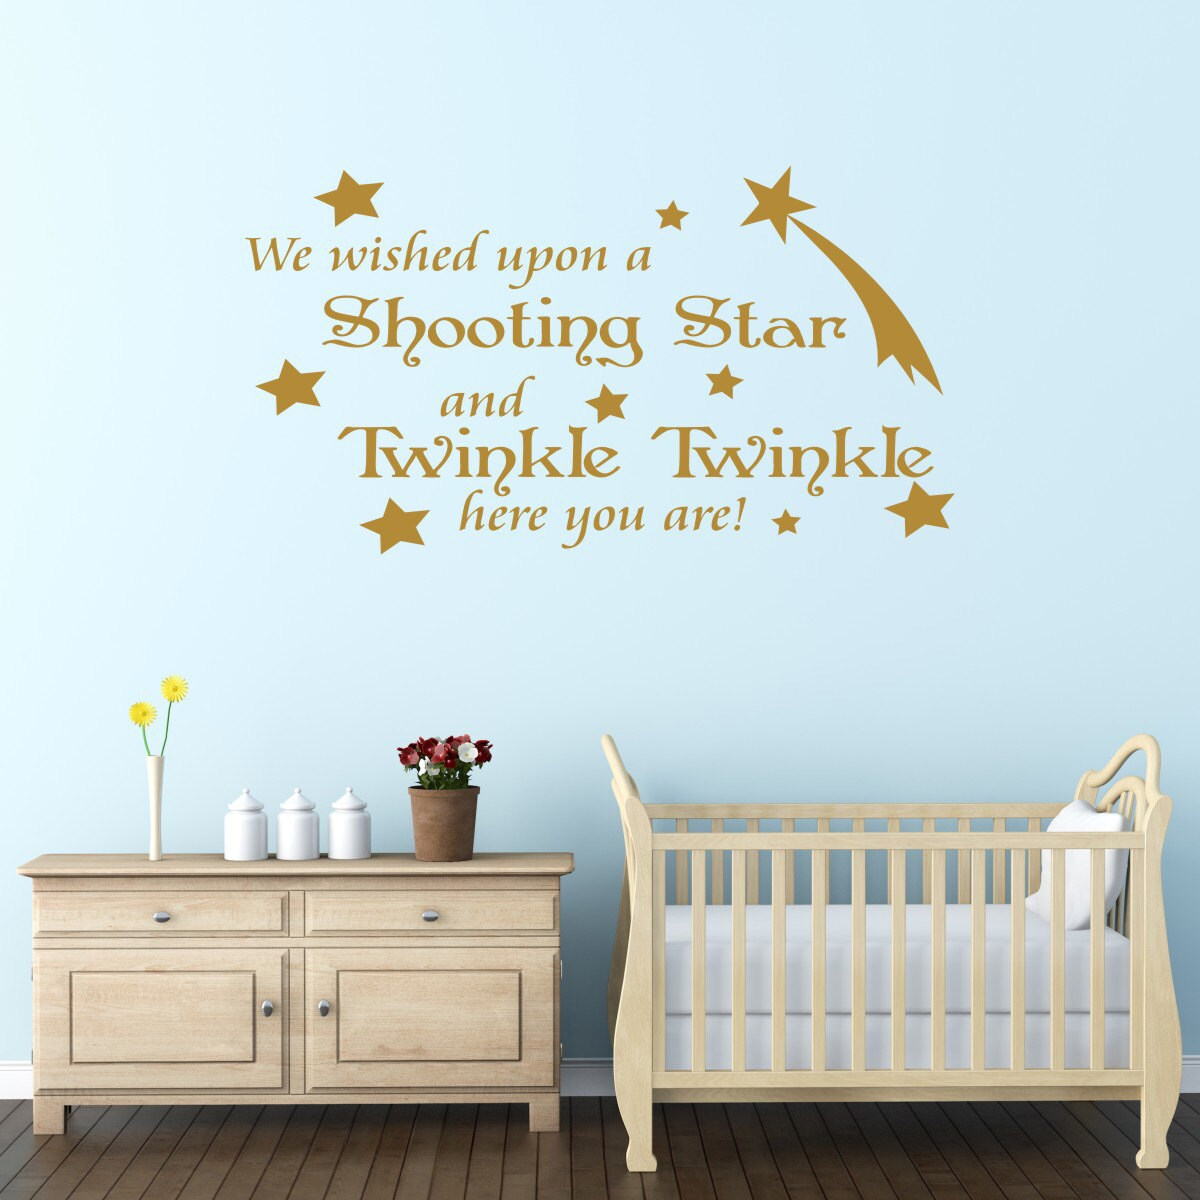 we wished upon a shooting nursery wall sticker quote